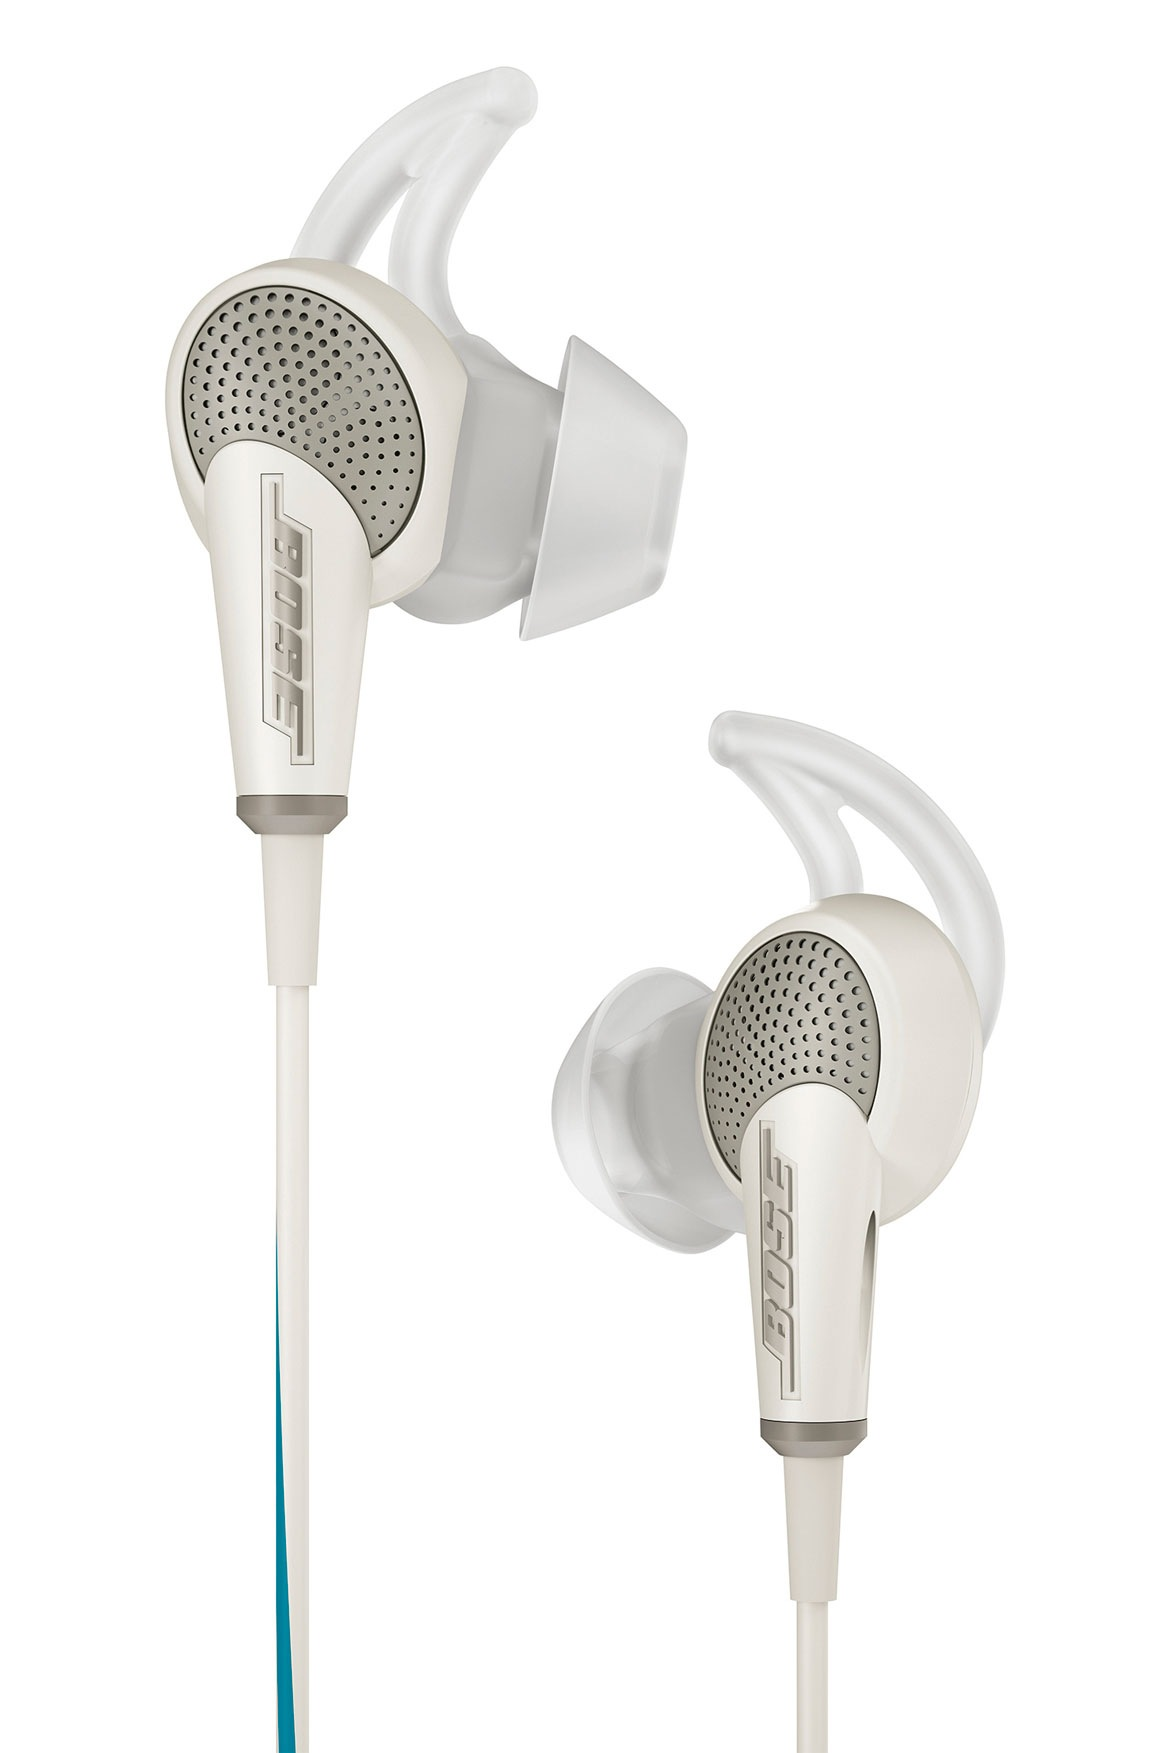 bose in ear headphones white. myer online - categoryname. « » «» bose in ear headphones white l